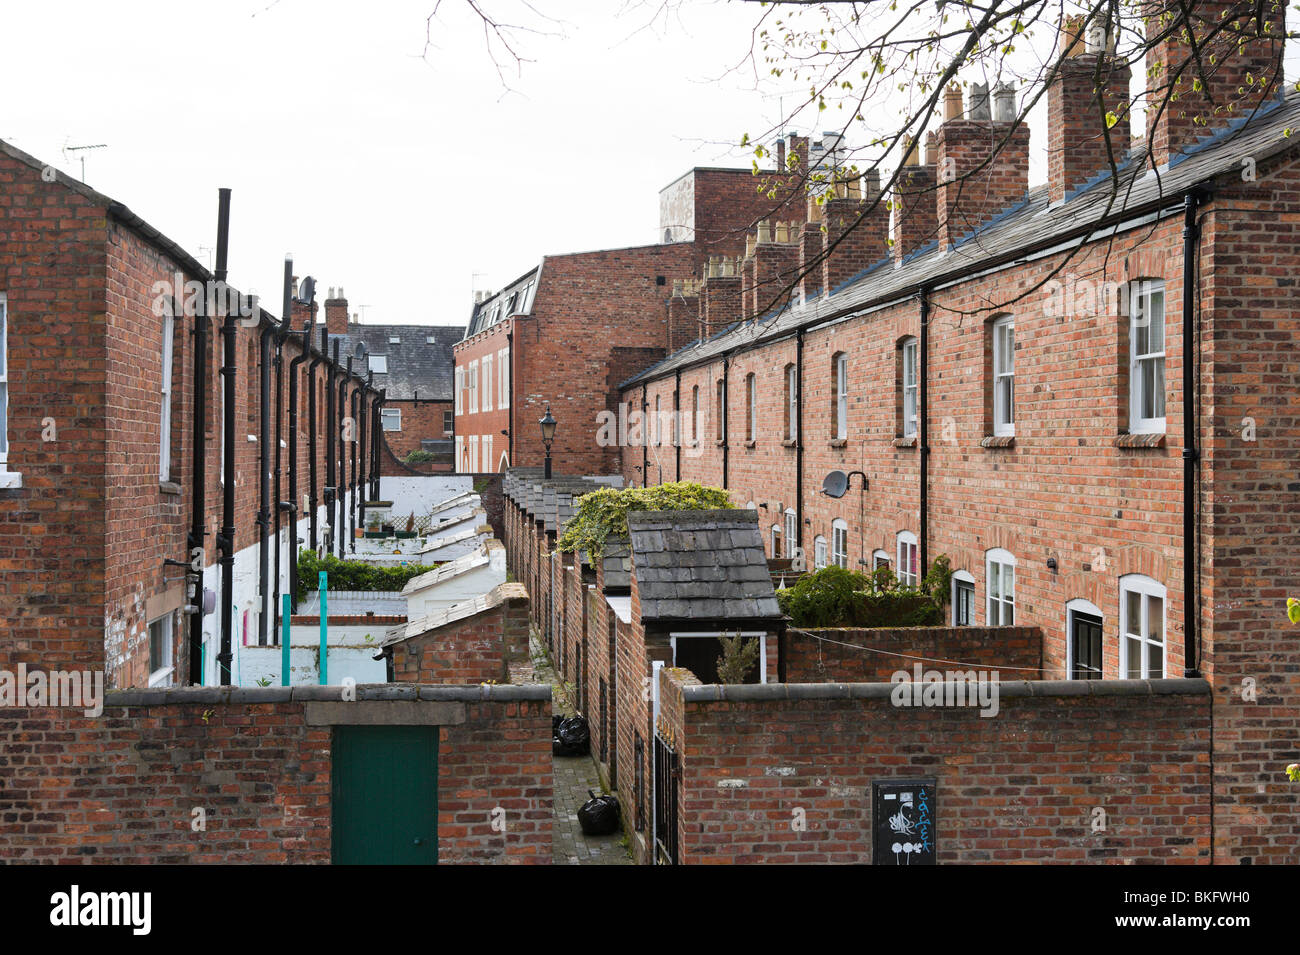 Rows of terraced houses, Chester, Cheshire, England, UK Stock Photo